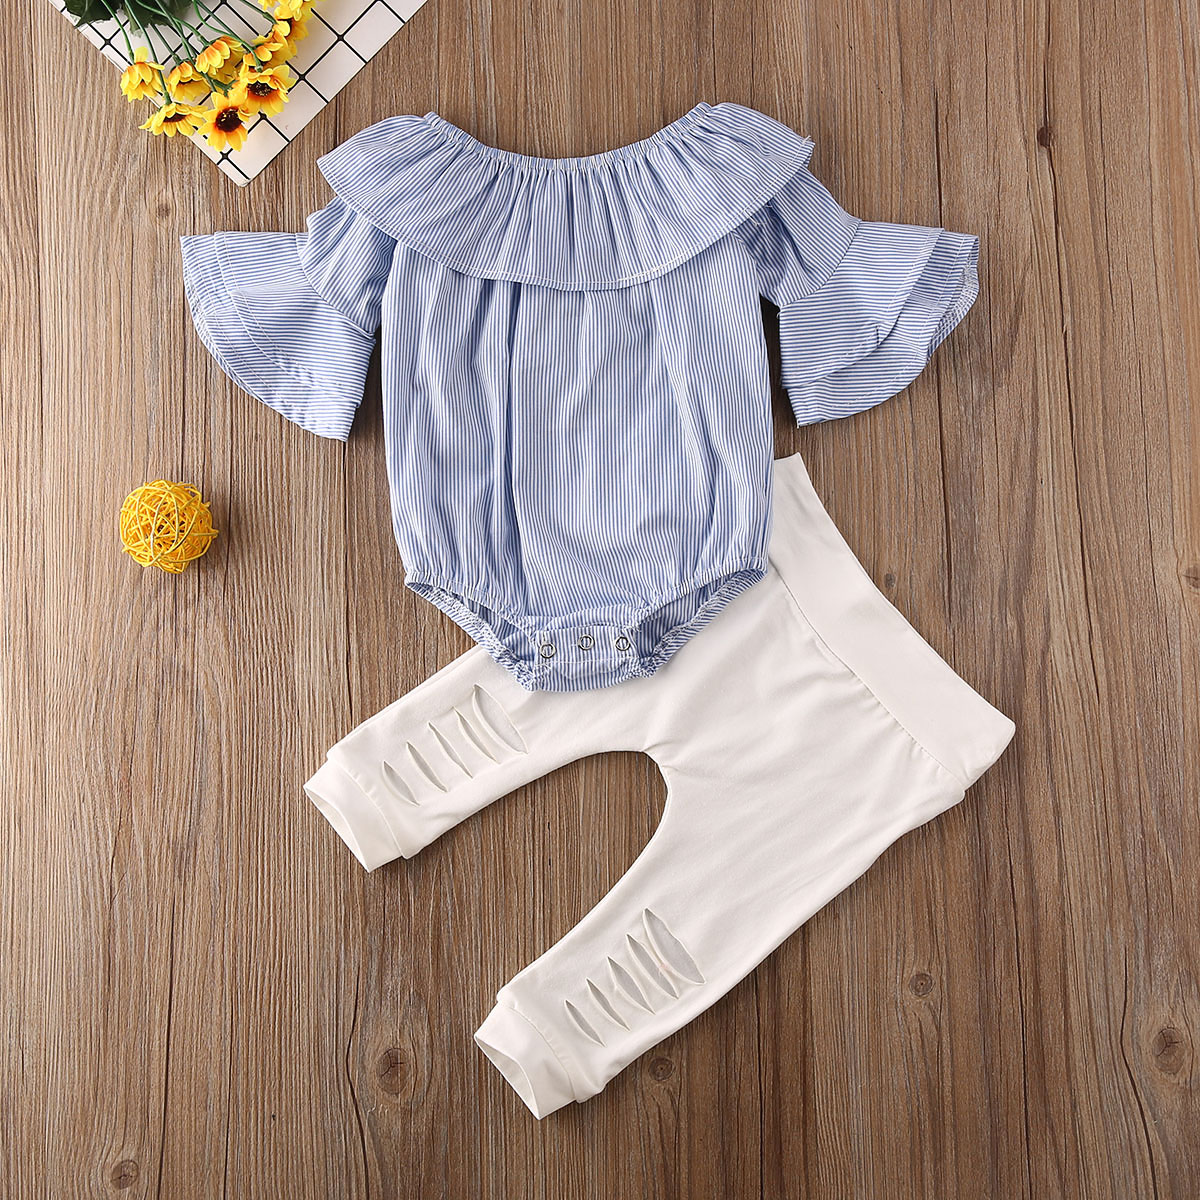 Pudcoco Newborn Baby Girl Clothes Off Shoudler Striped Ruffle Flare Sleeve Romper Tops Ripped Long Pants 2Pcs Outfits Clothes